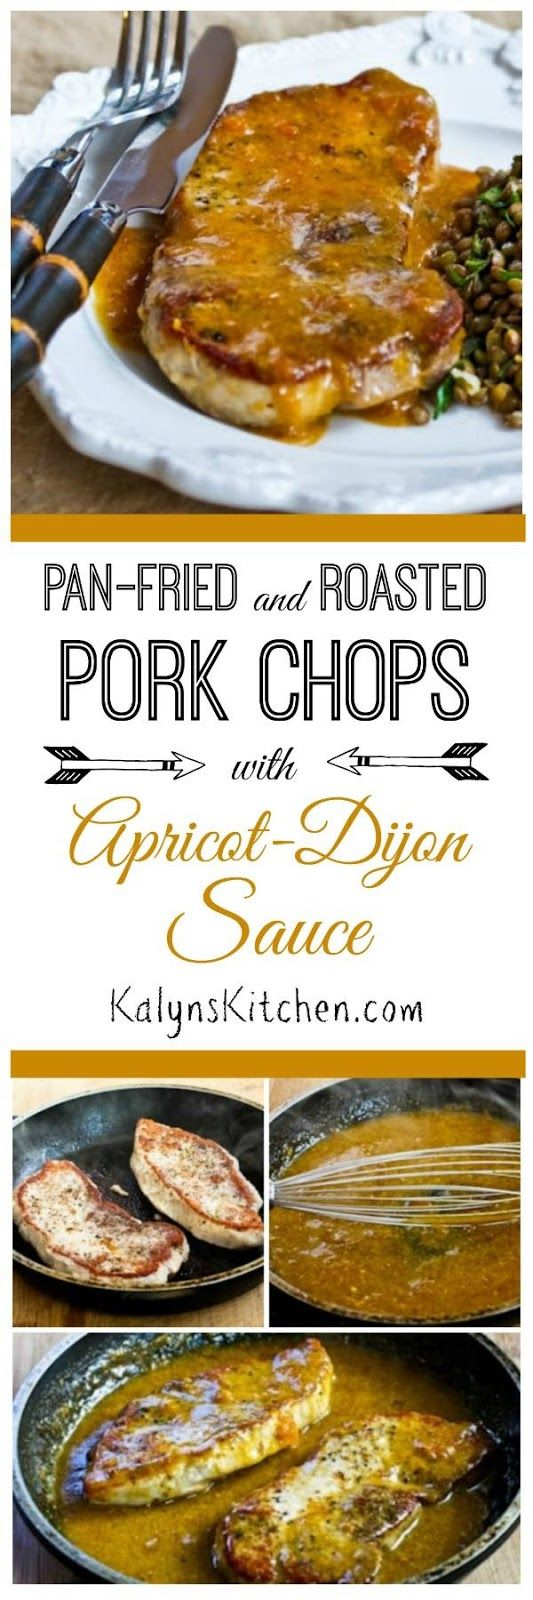 Pan-Fried and Roasted Pork Chops with Apricot-Dijon Sauce are fantastic for an easy week-night meal! If you use sugar-free or low-sugar apricot preserves, this is still a pretty low-carb dish, and it's also gluten-free and dairy-free. [found on KalynsKitchen.com]